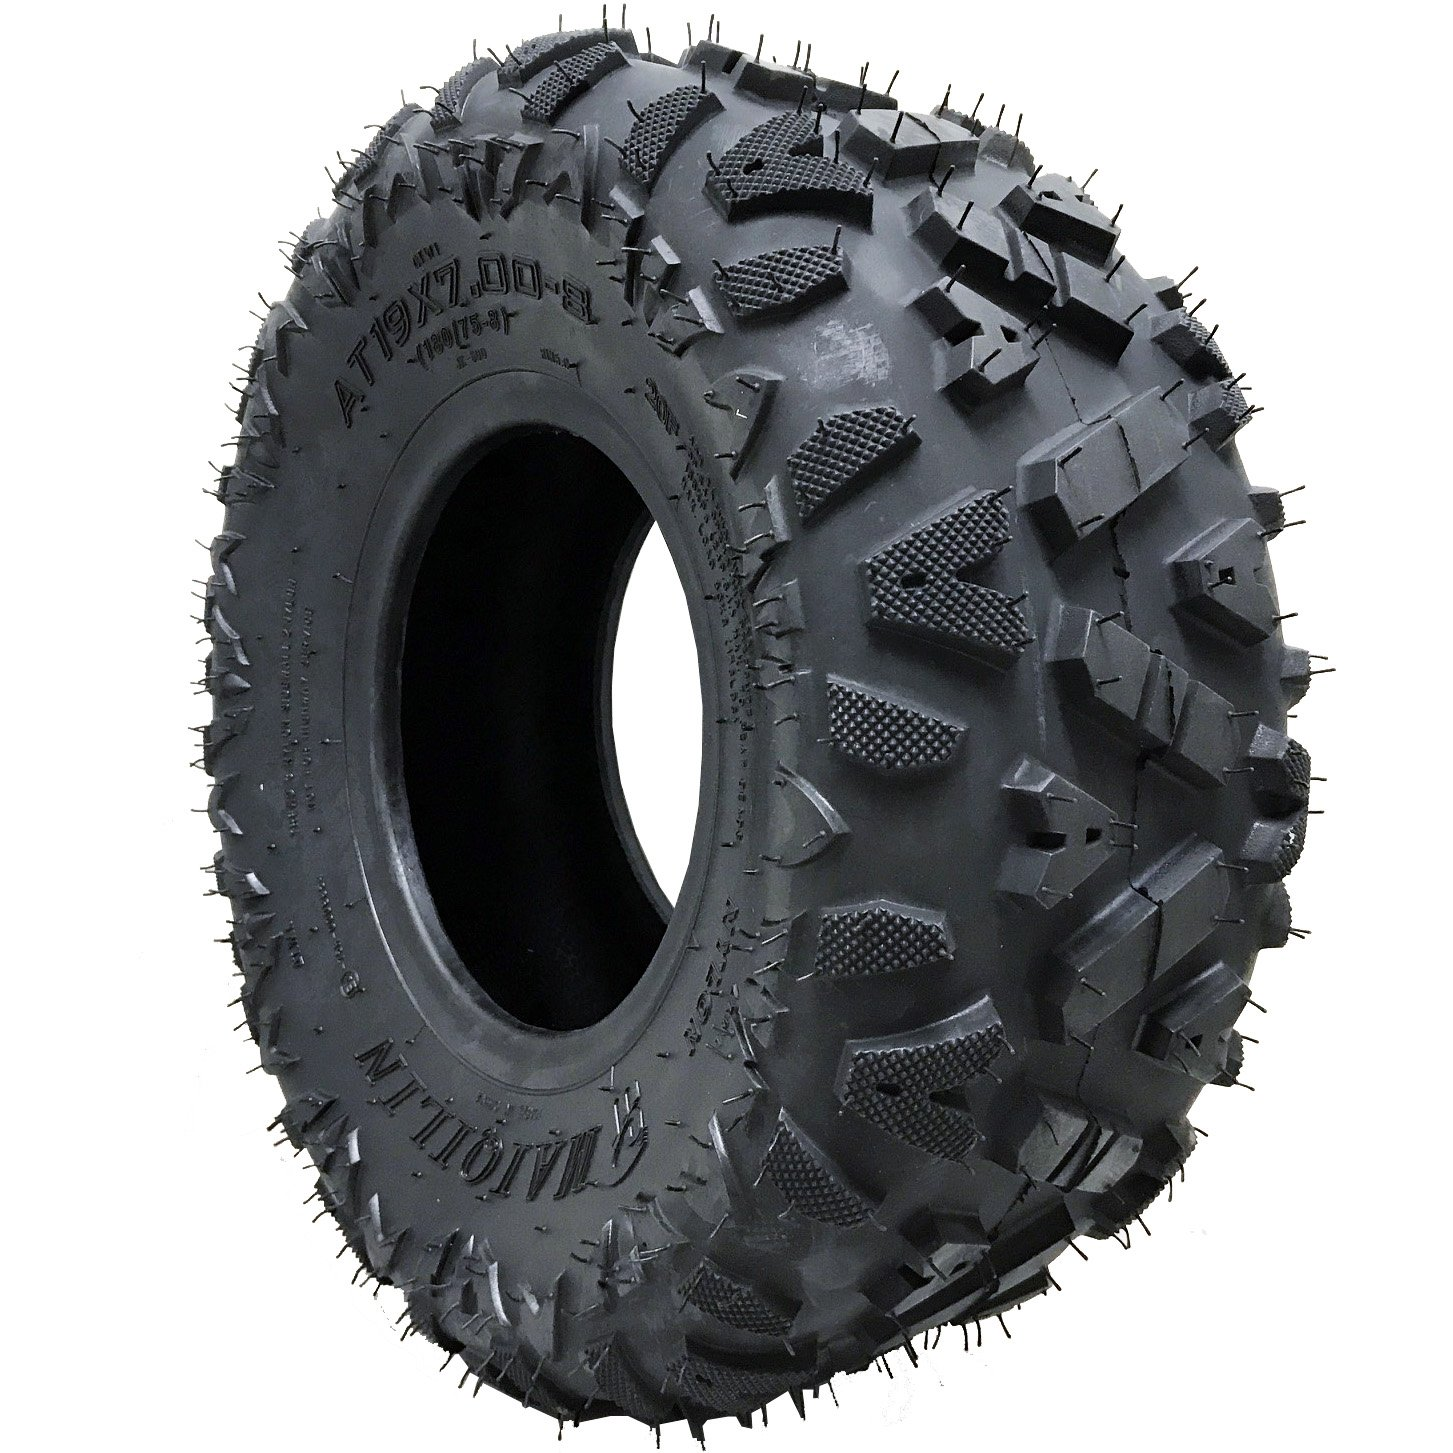 AR DONGFANG ATV Tires 19x7-8 Quad UTV Go Kart Tires ATV Tire 4PLY Tubeless